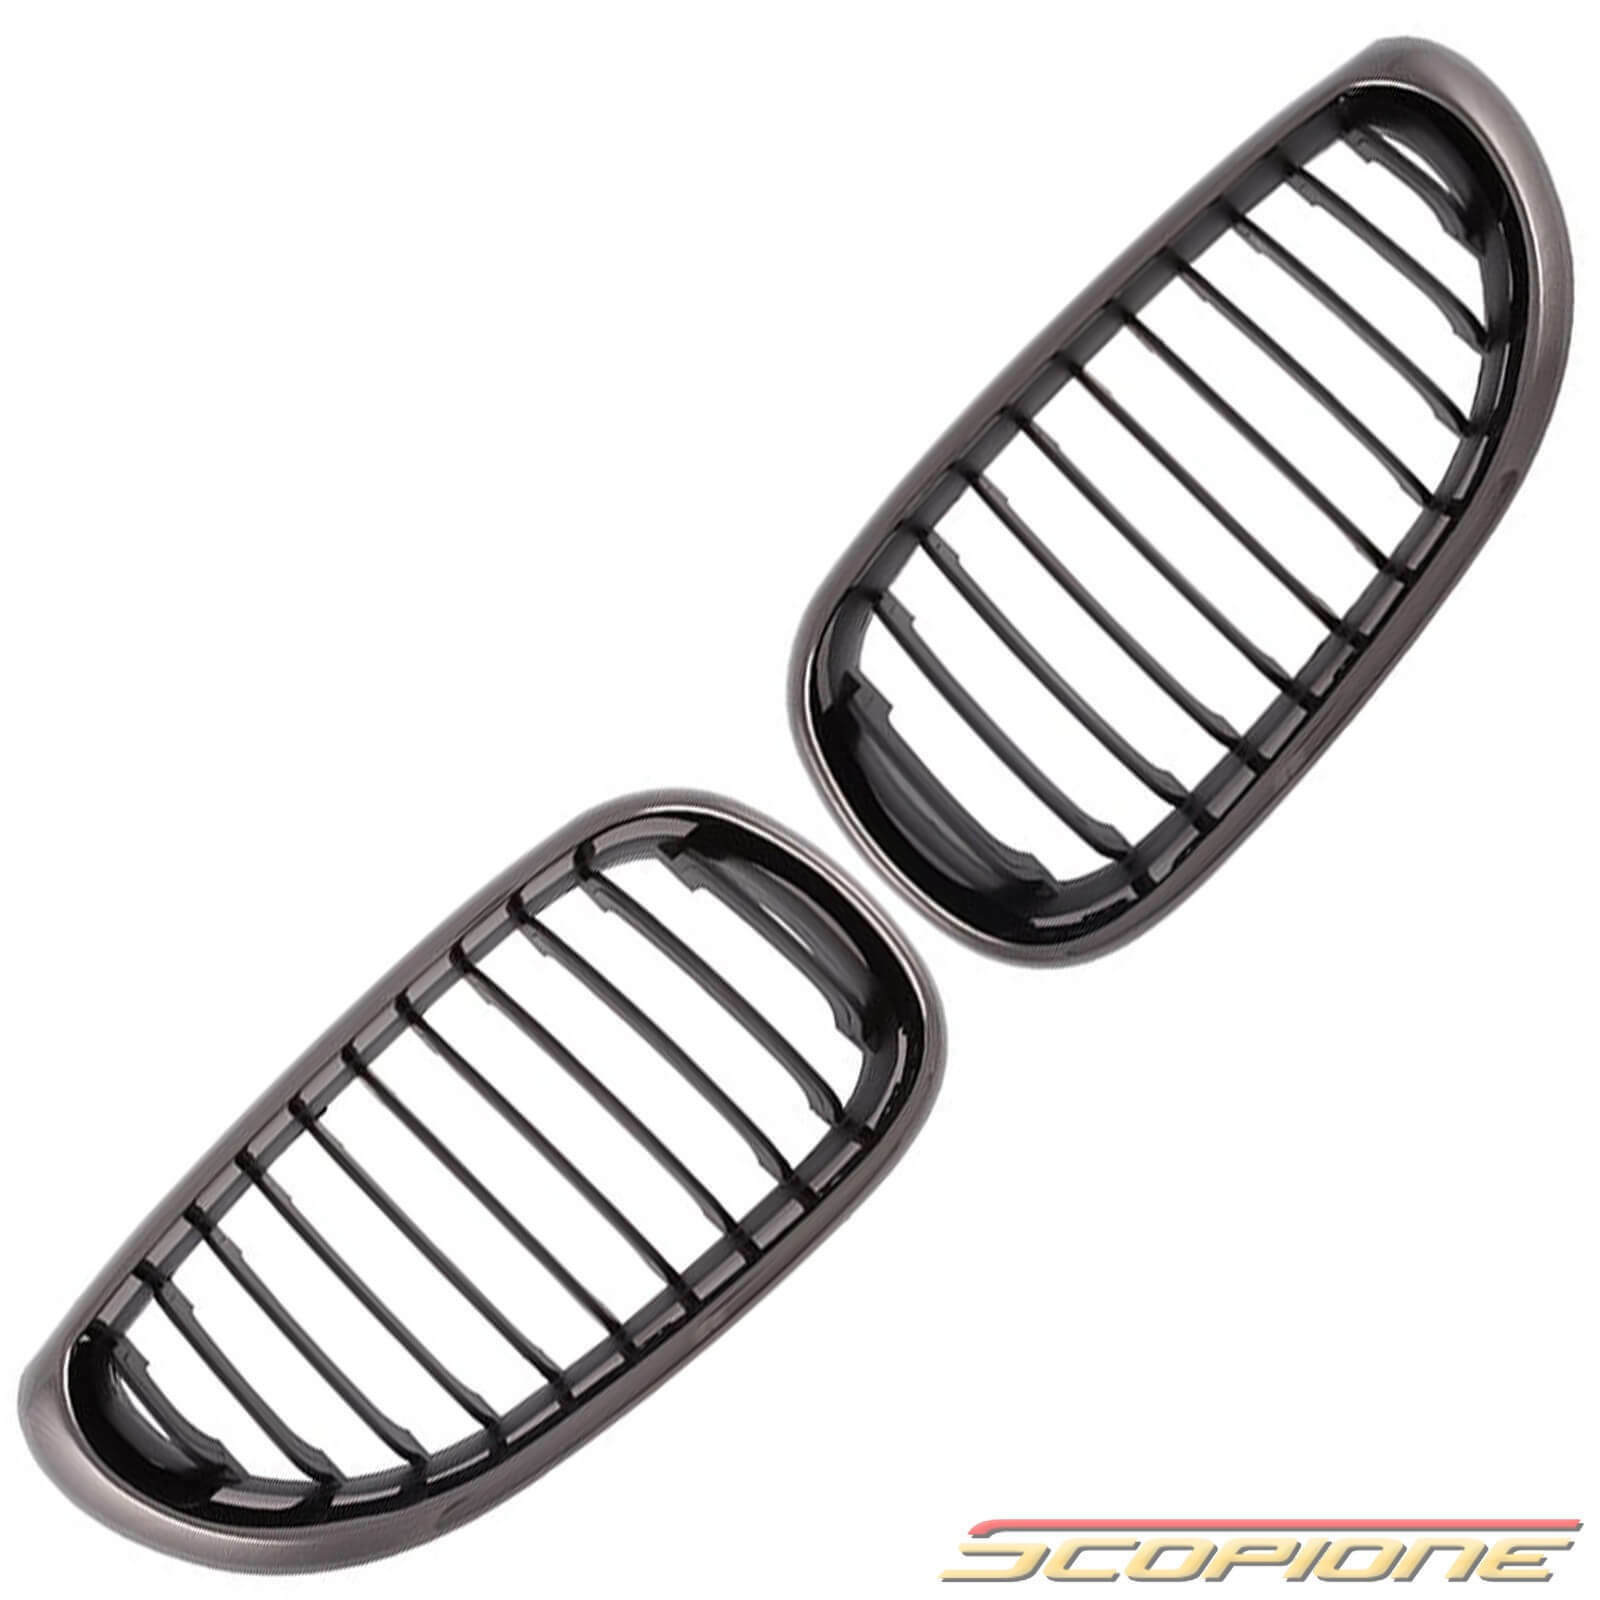 Scopione Black Chrome Kidney Grille Set For Bmw 04 10 5